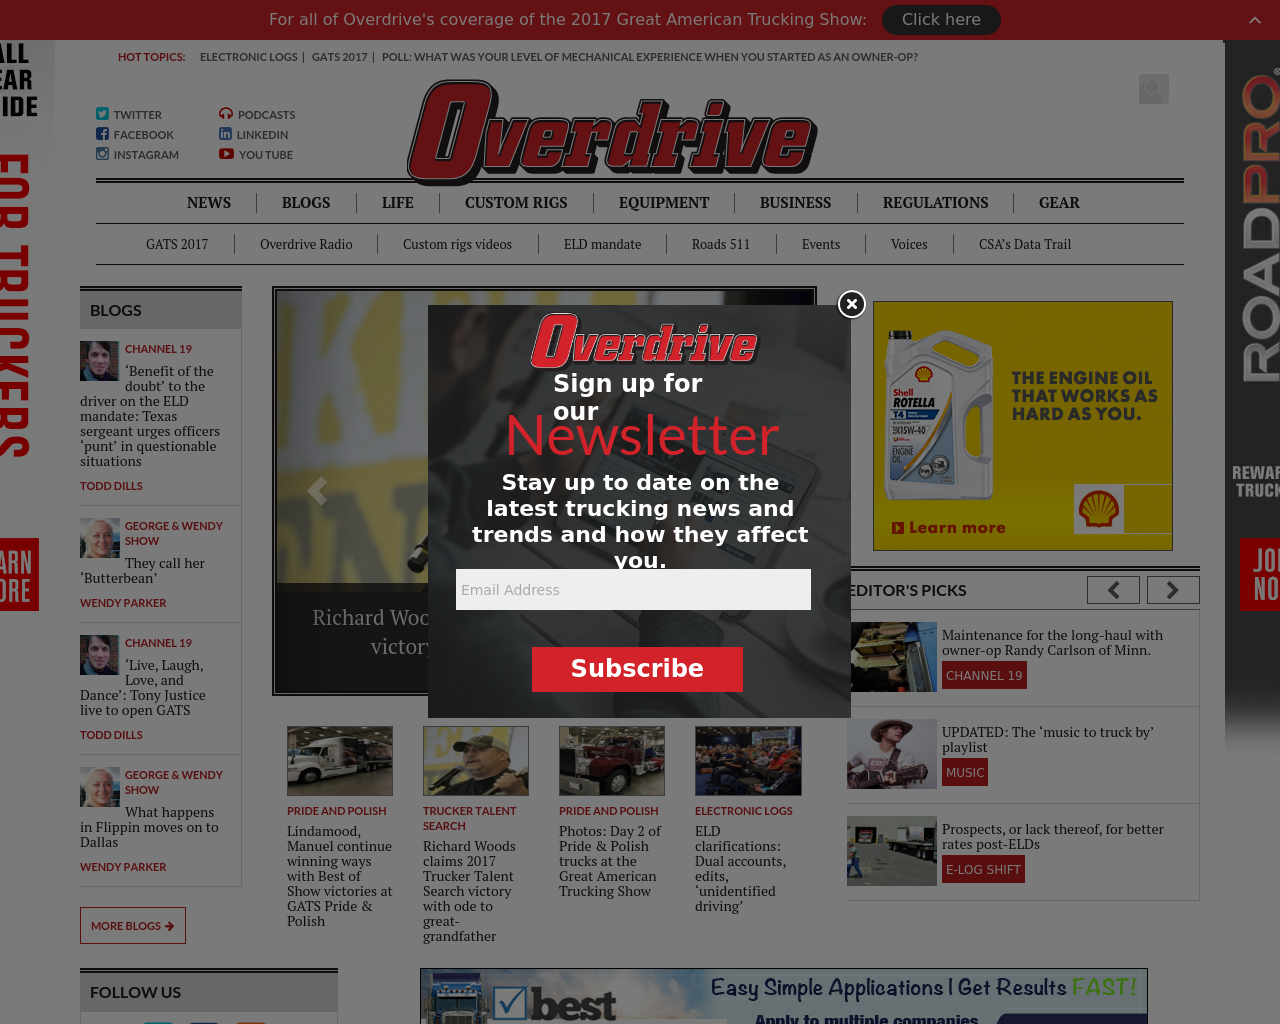 Overdrive-Online-Advertising-Reviews-Pricing